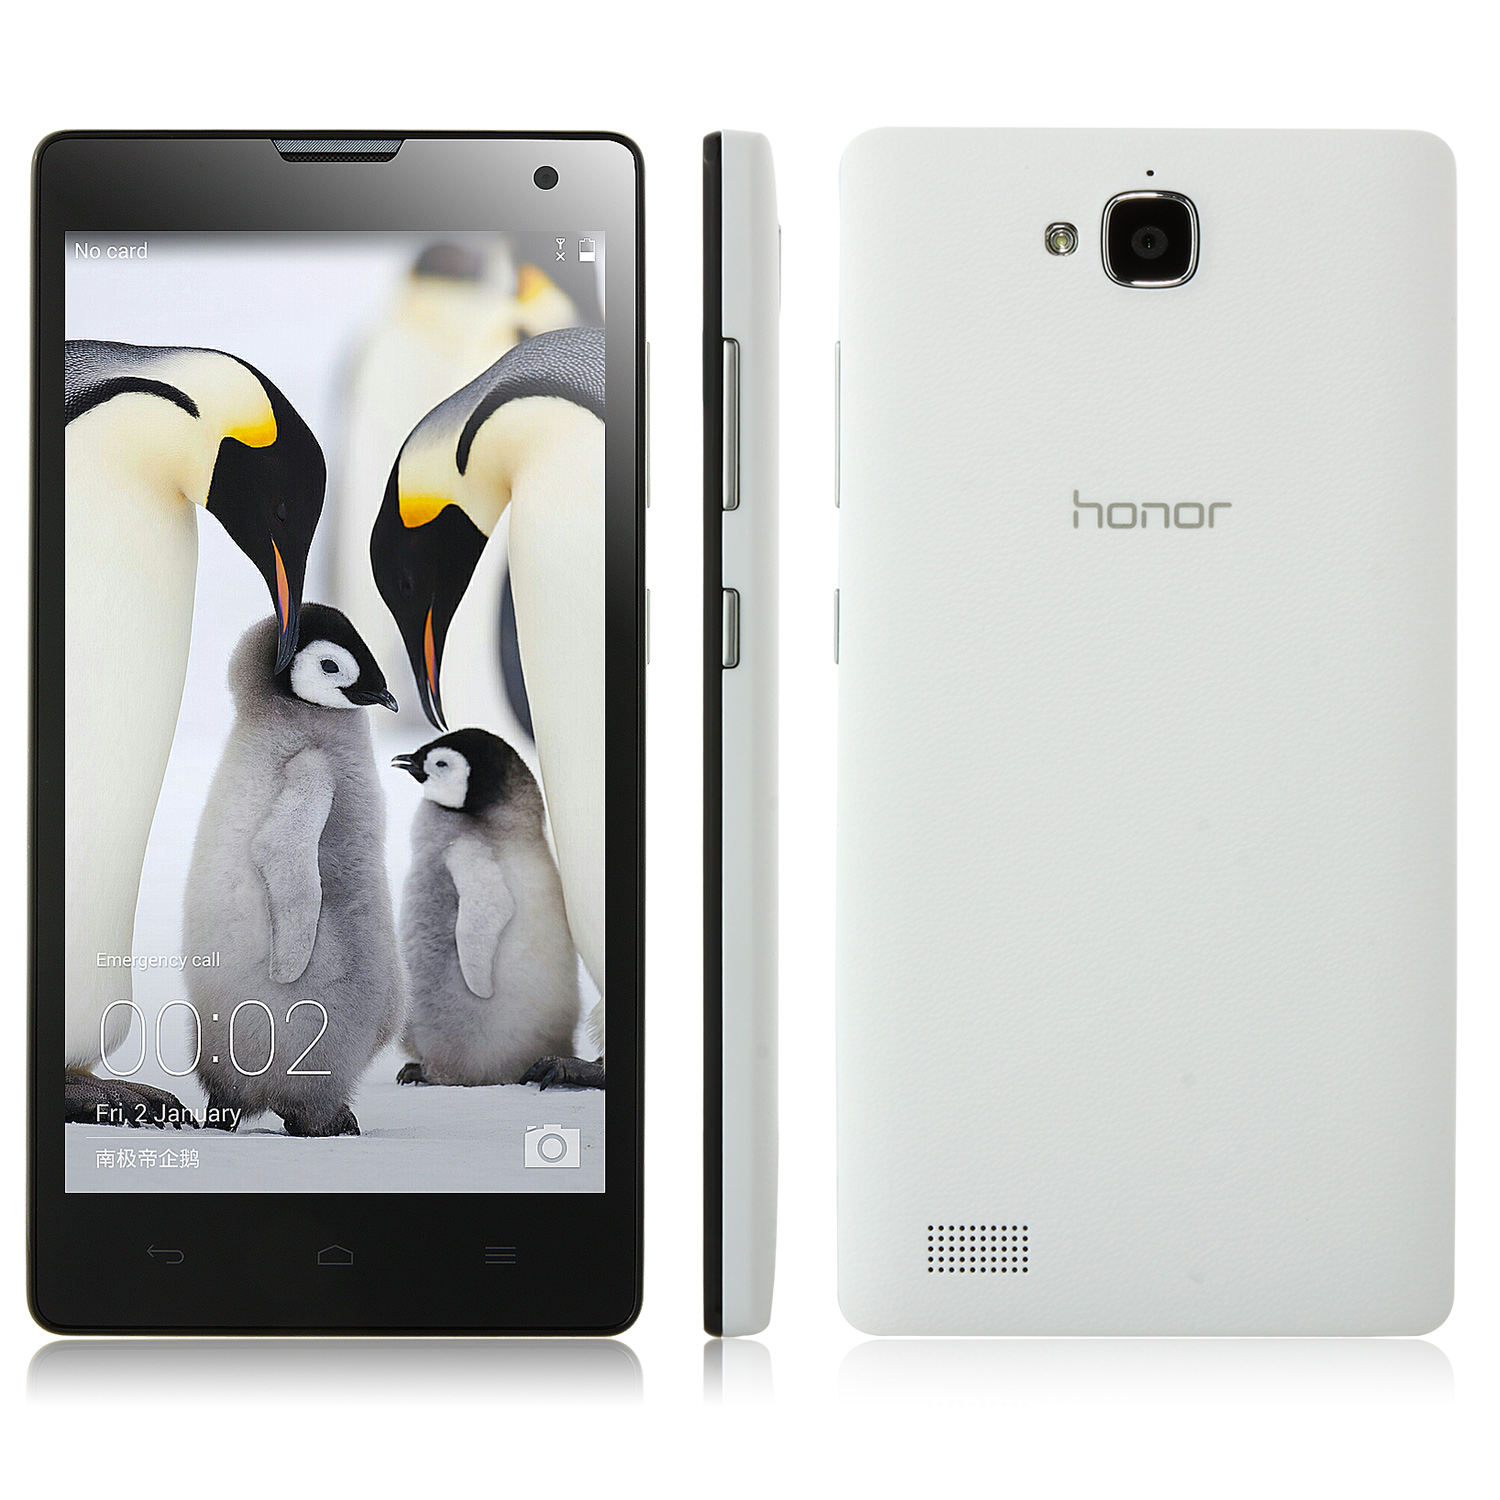 HUAWEI Honor 3C Smartphone 4G LTE 2GB 16GB Hisilicon Kirin 910 5.0 Inch HD OGS Screen